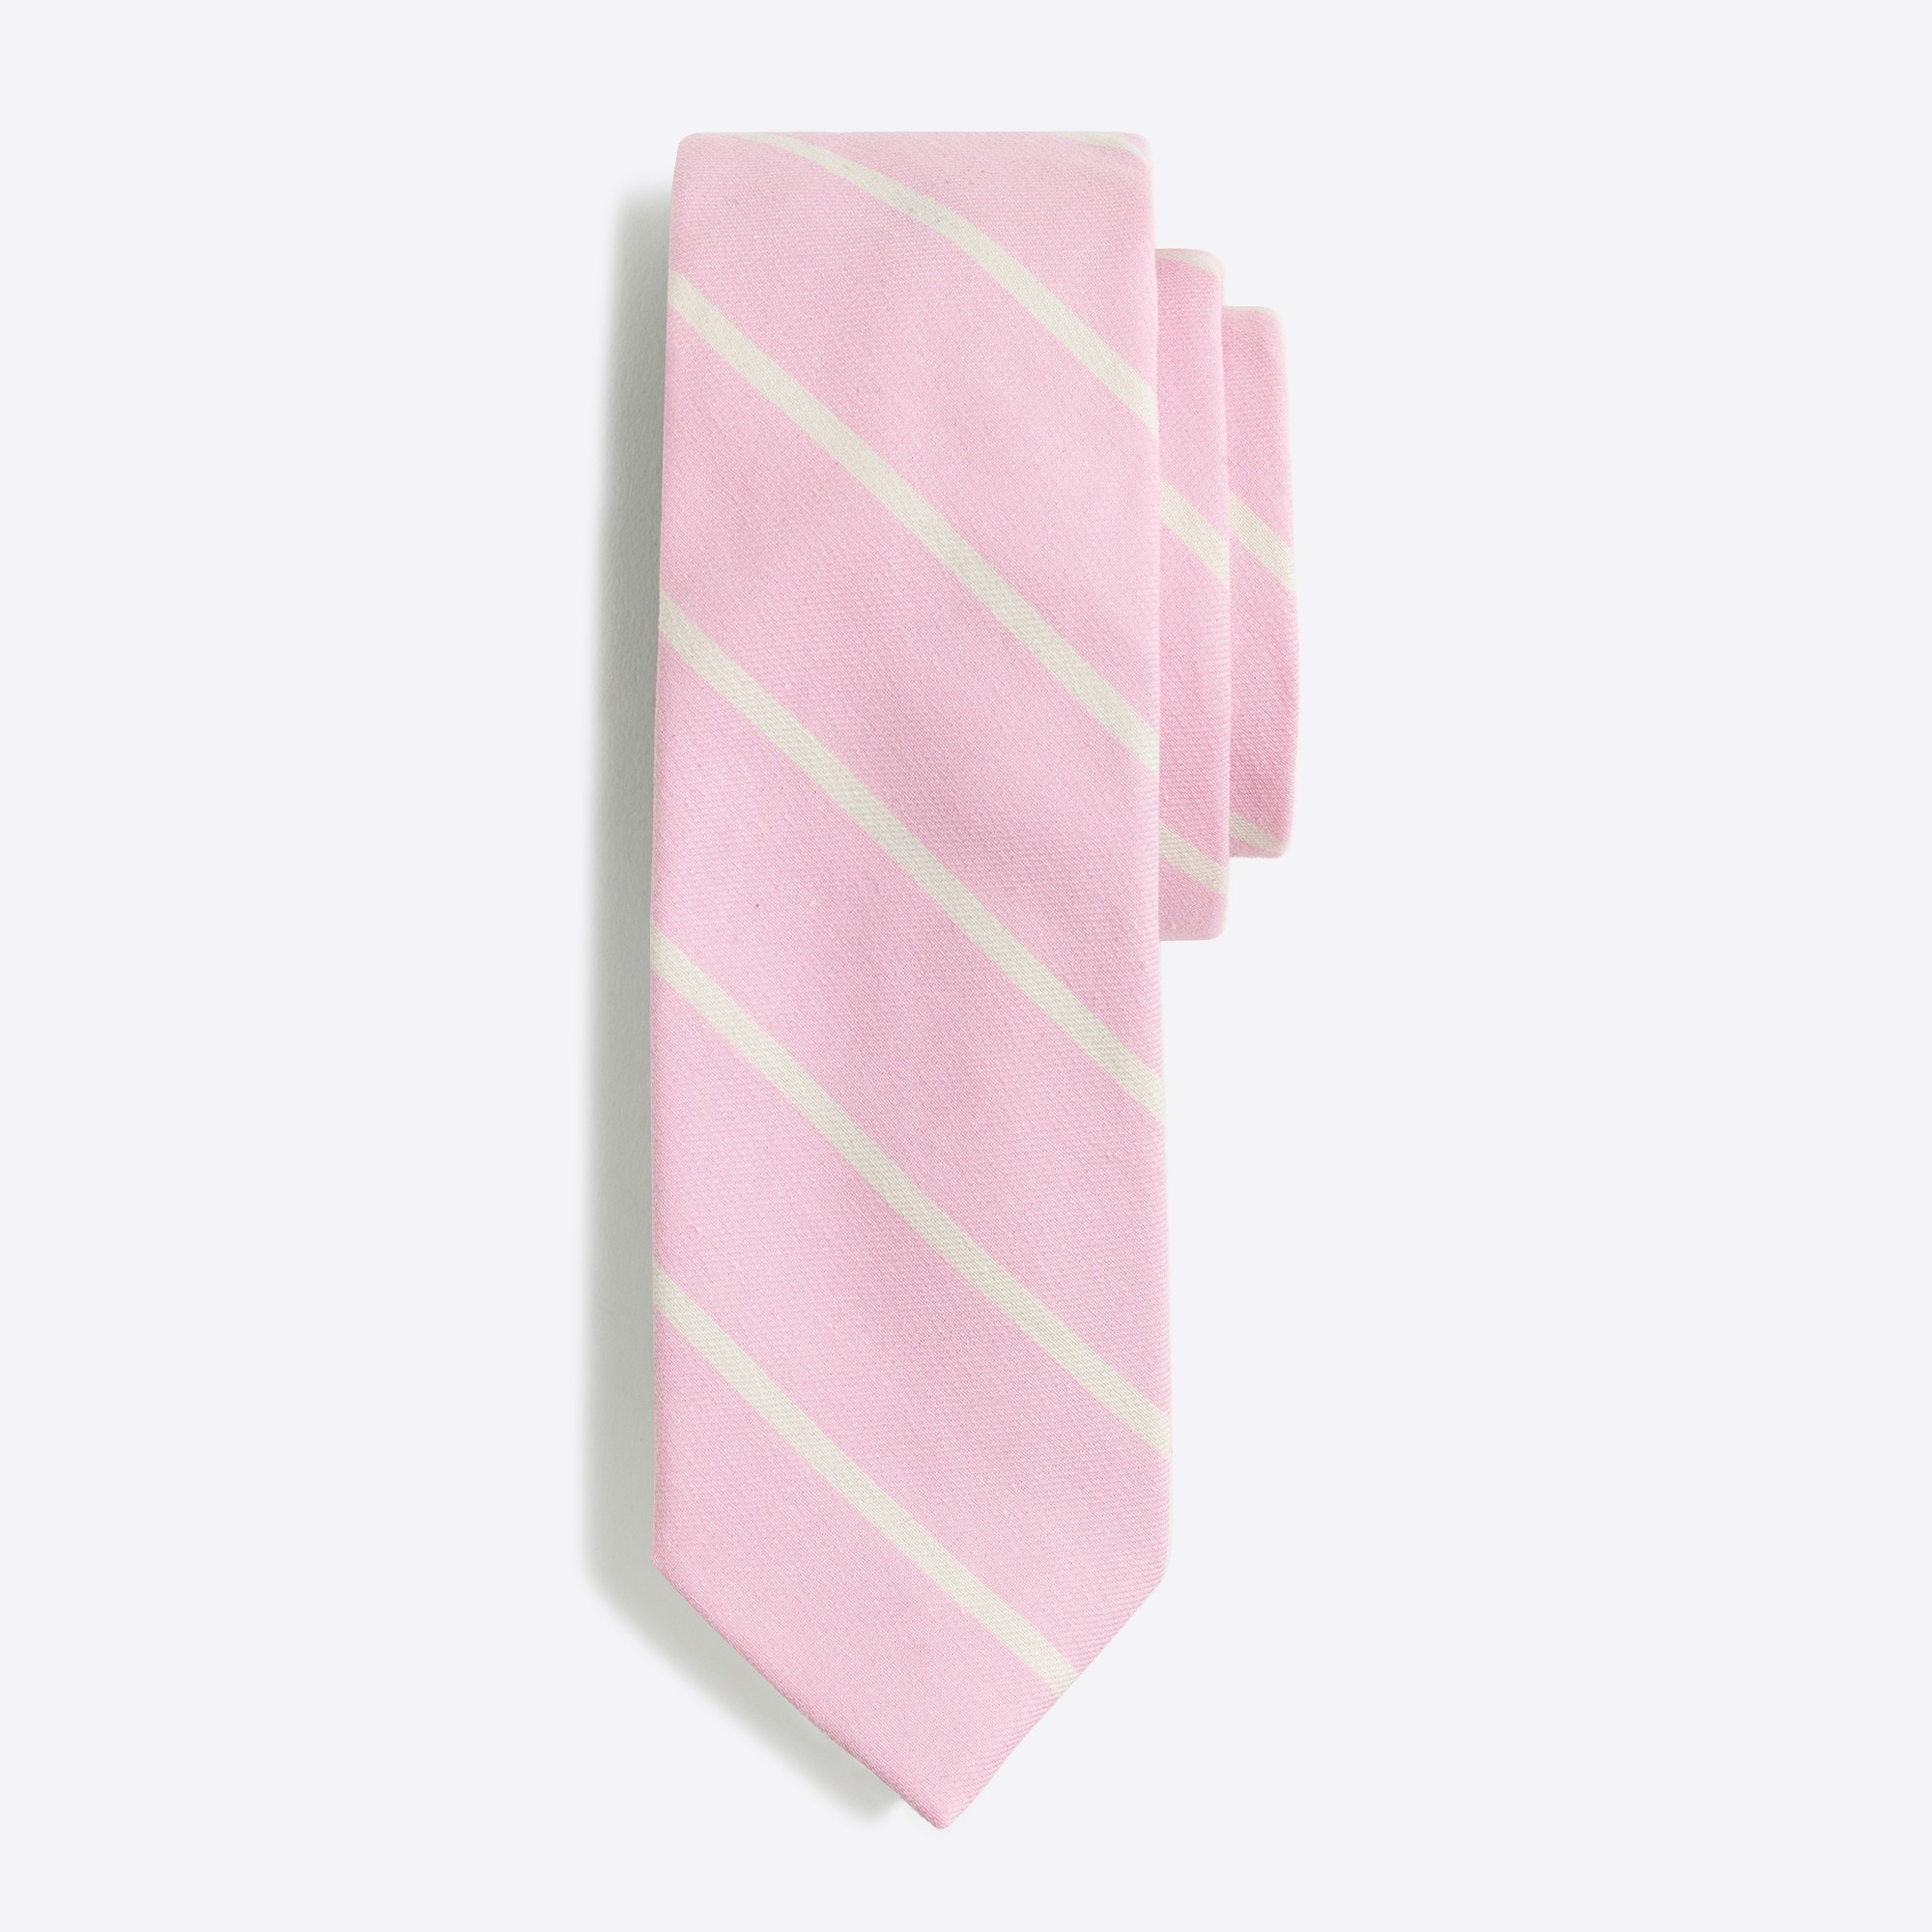 thin stripe tie : factorymen ties